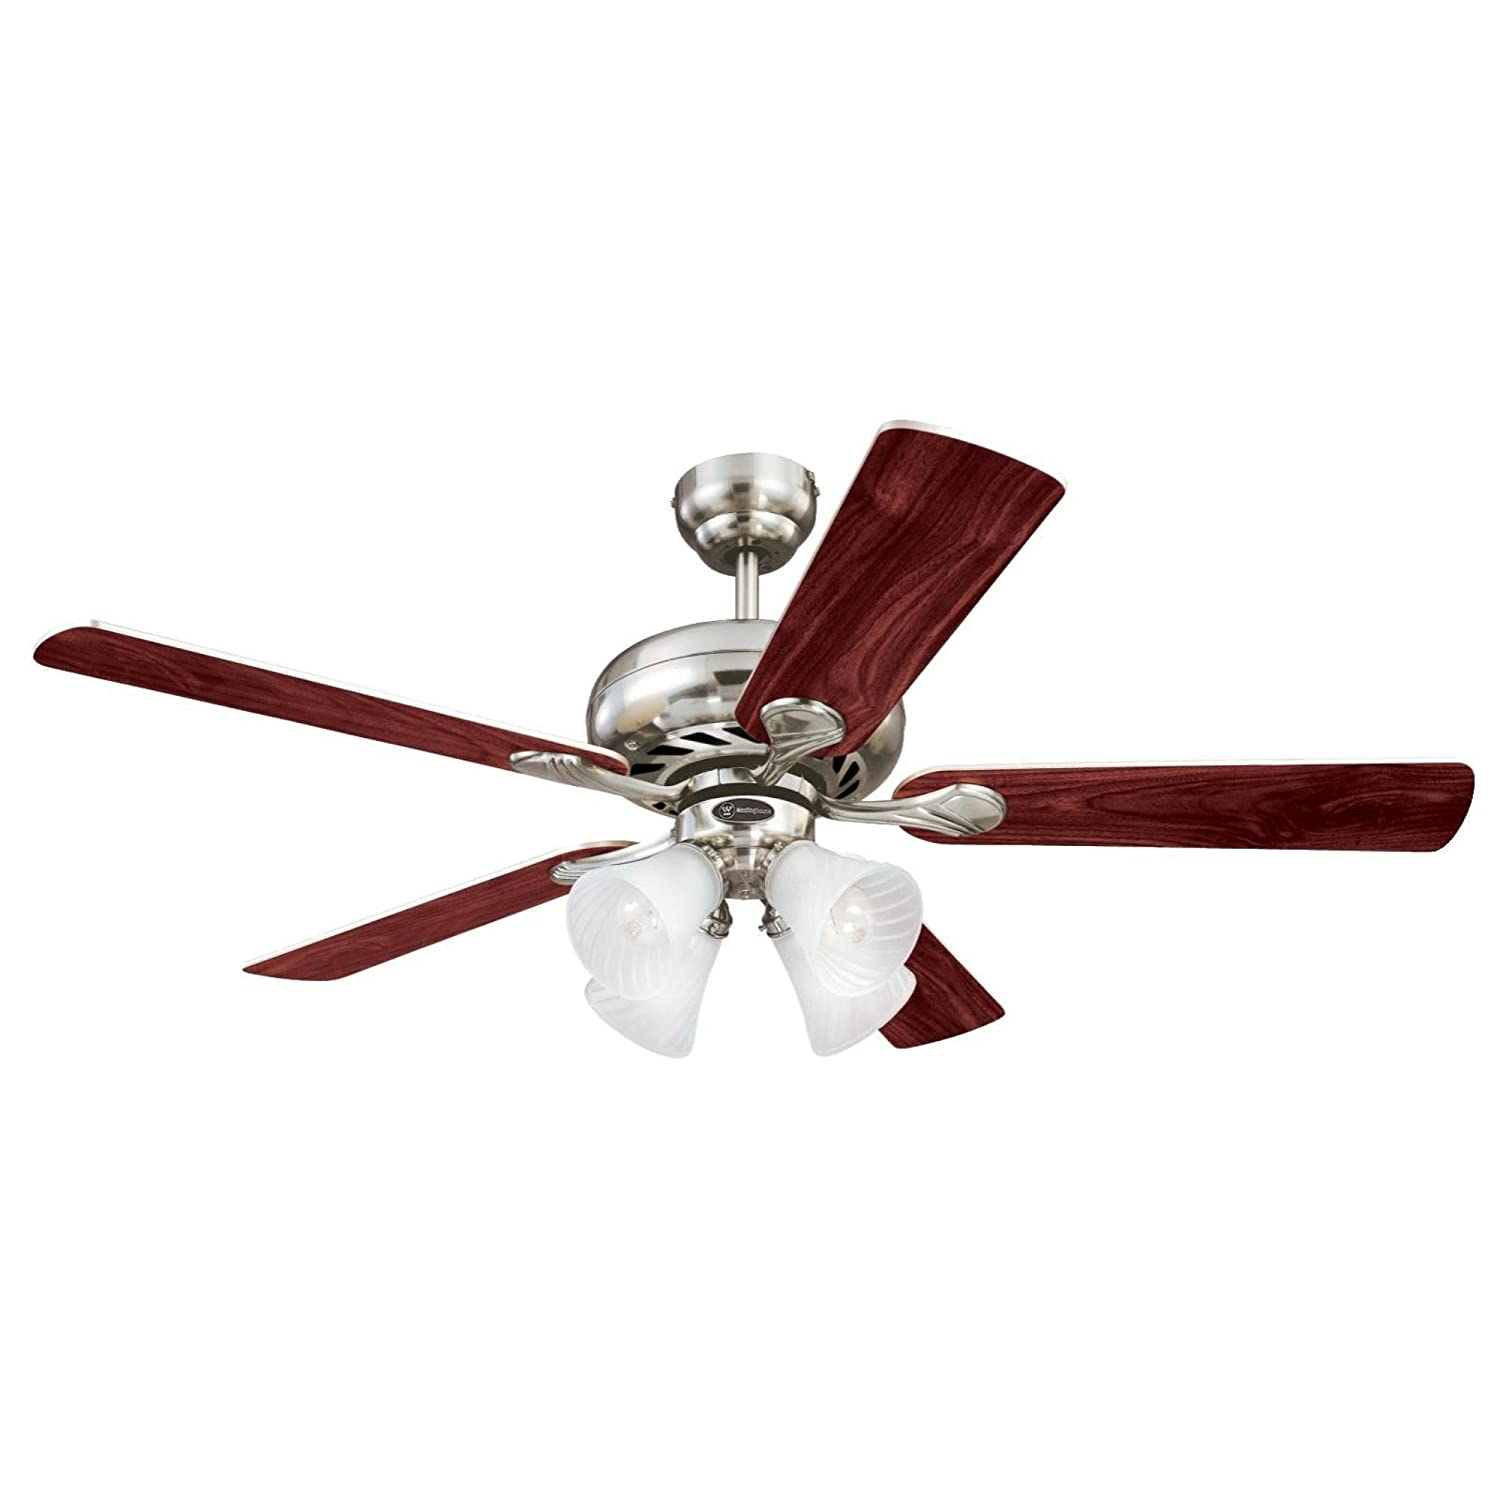 Westinghouse panorama ceiling fan house designer today westinghouse 7852120 swirl four light 52 inch reversible five blade rh amazon com westinghouse panorama 52 inch ceiling fan westinghouse ceiling fan parts aloadofball Image collections